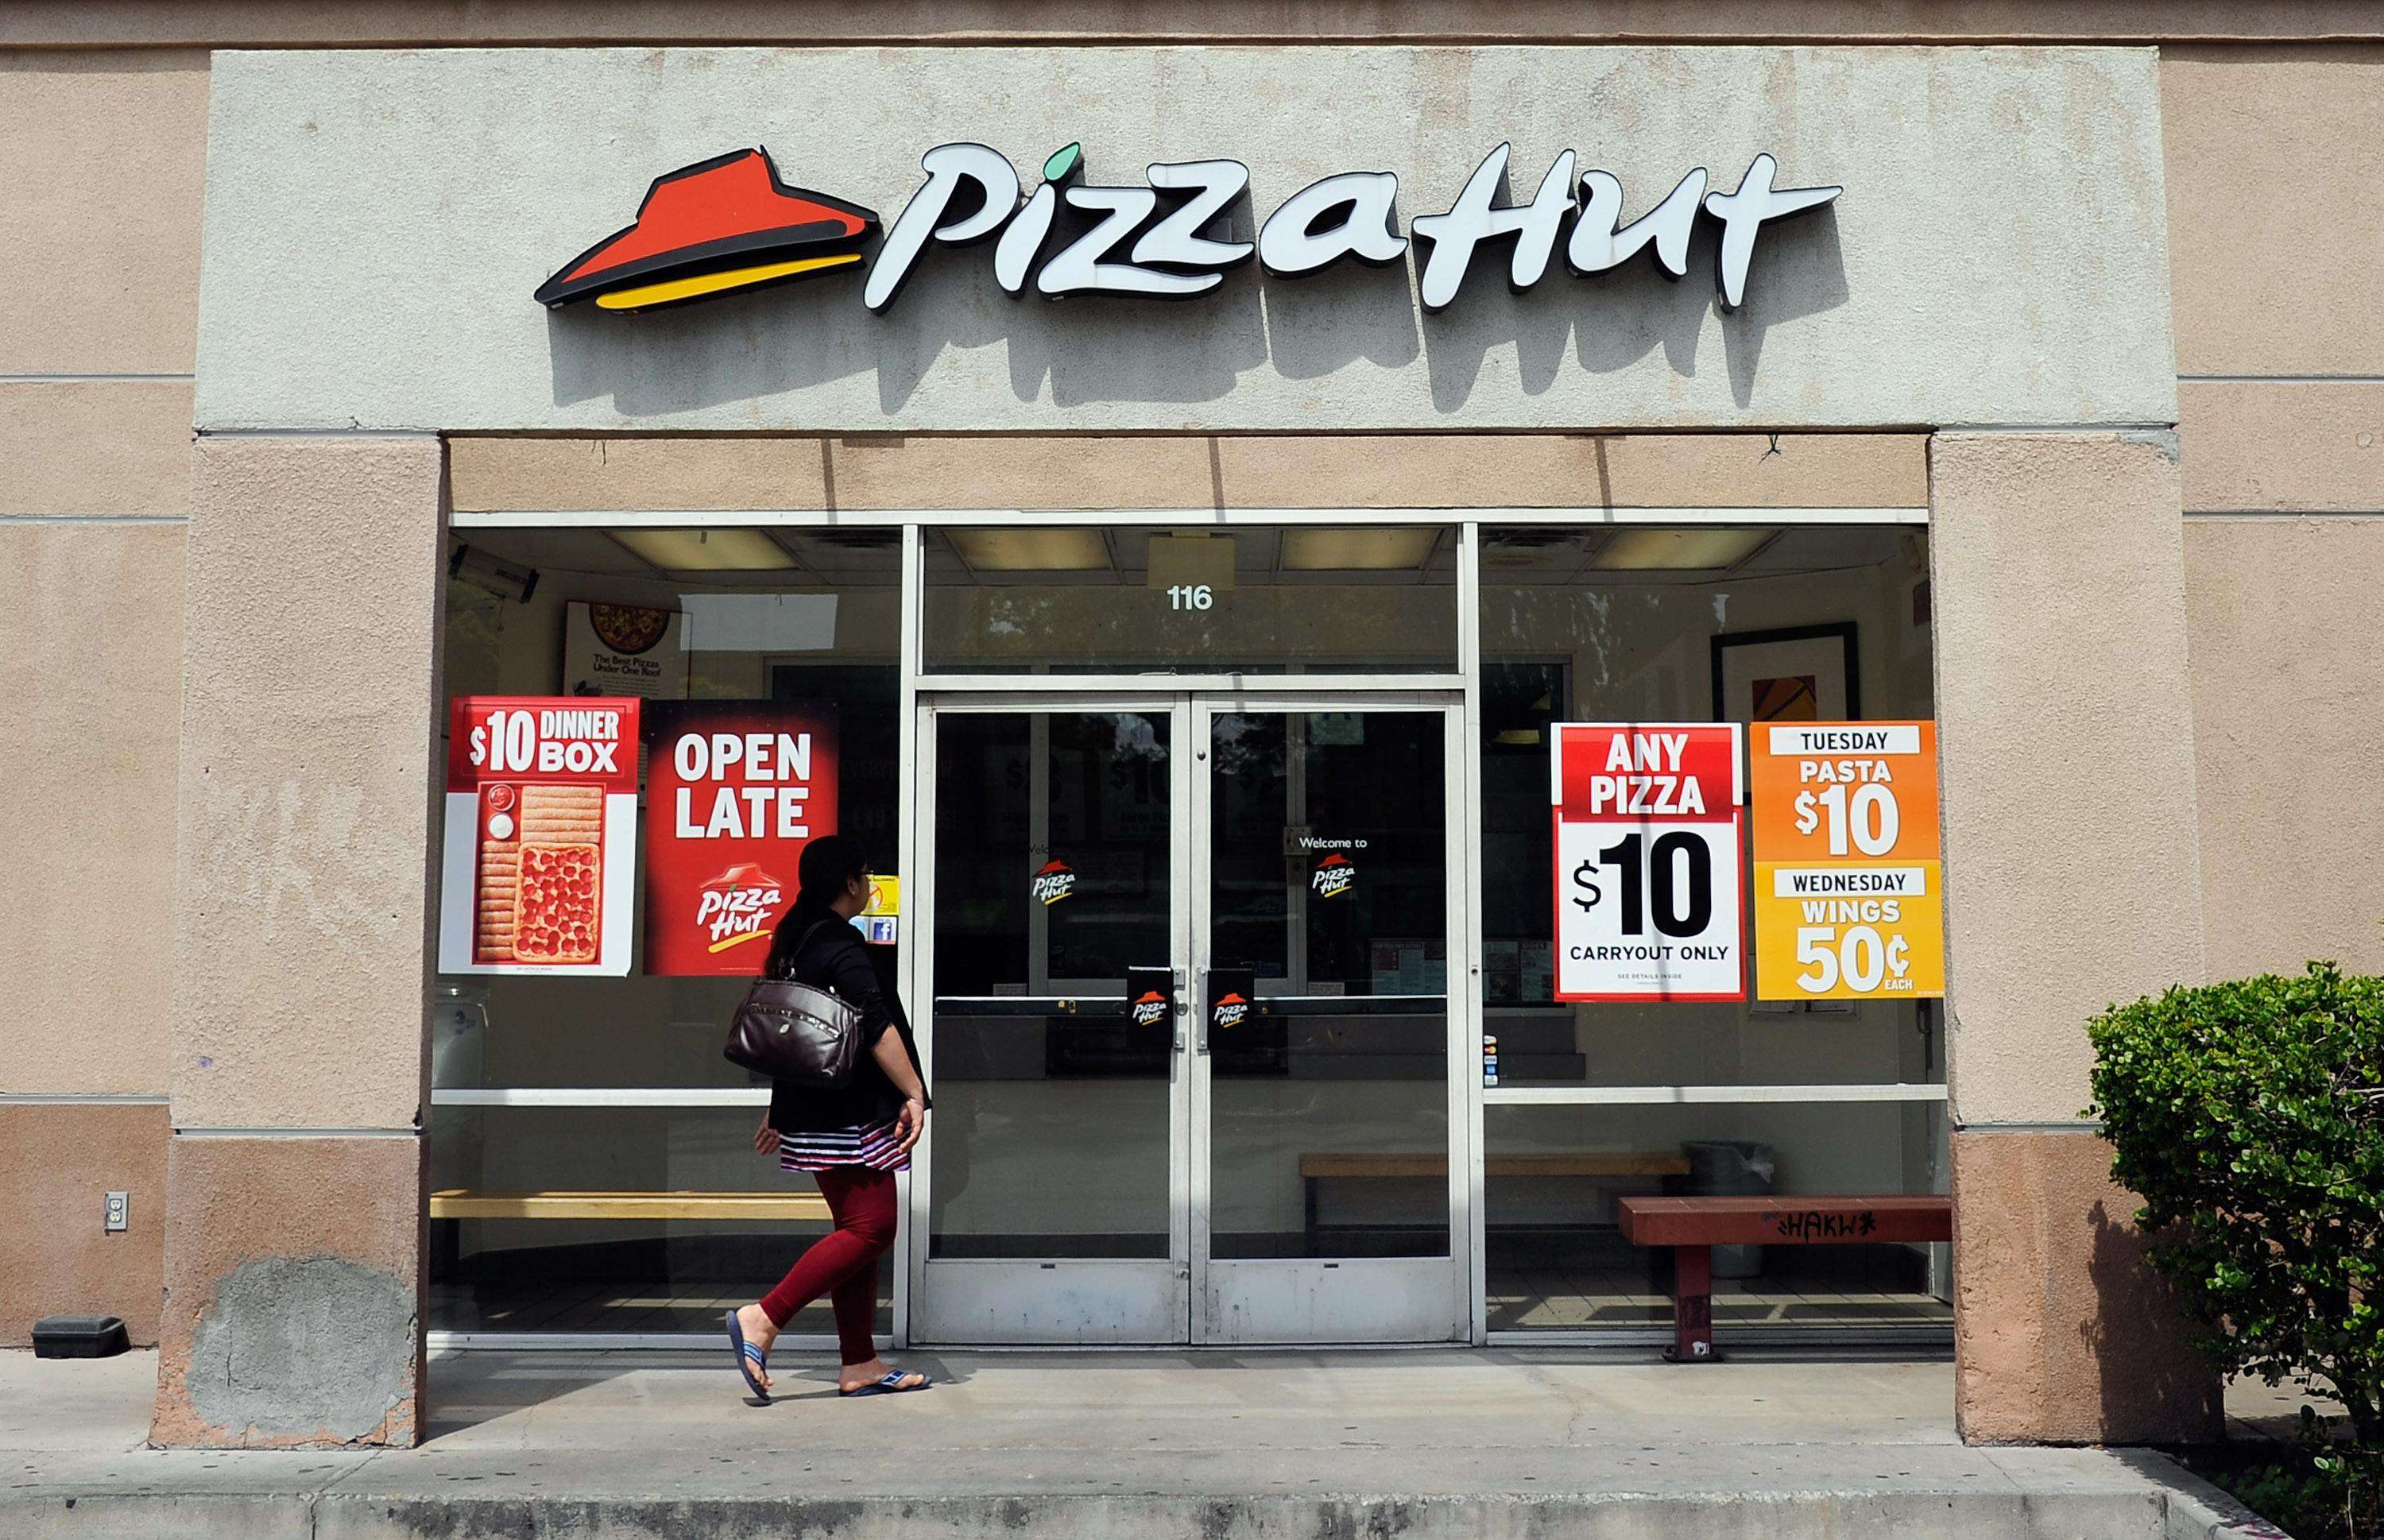 Pizza Hut storefront